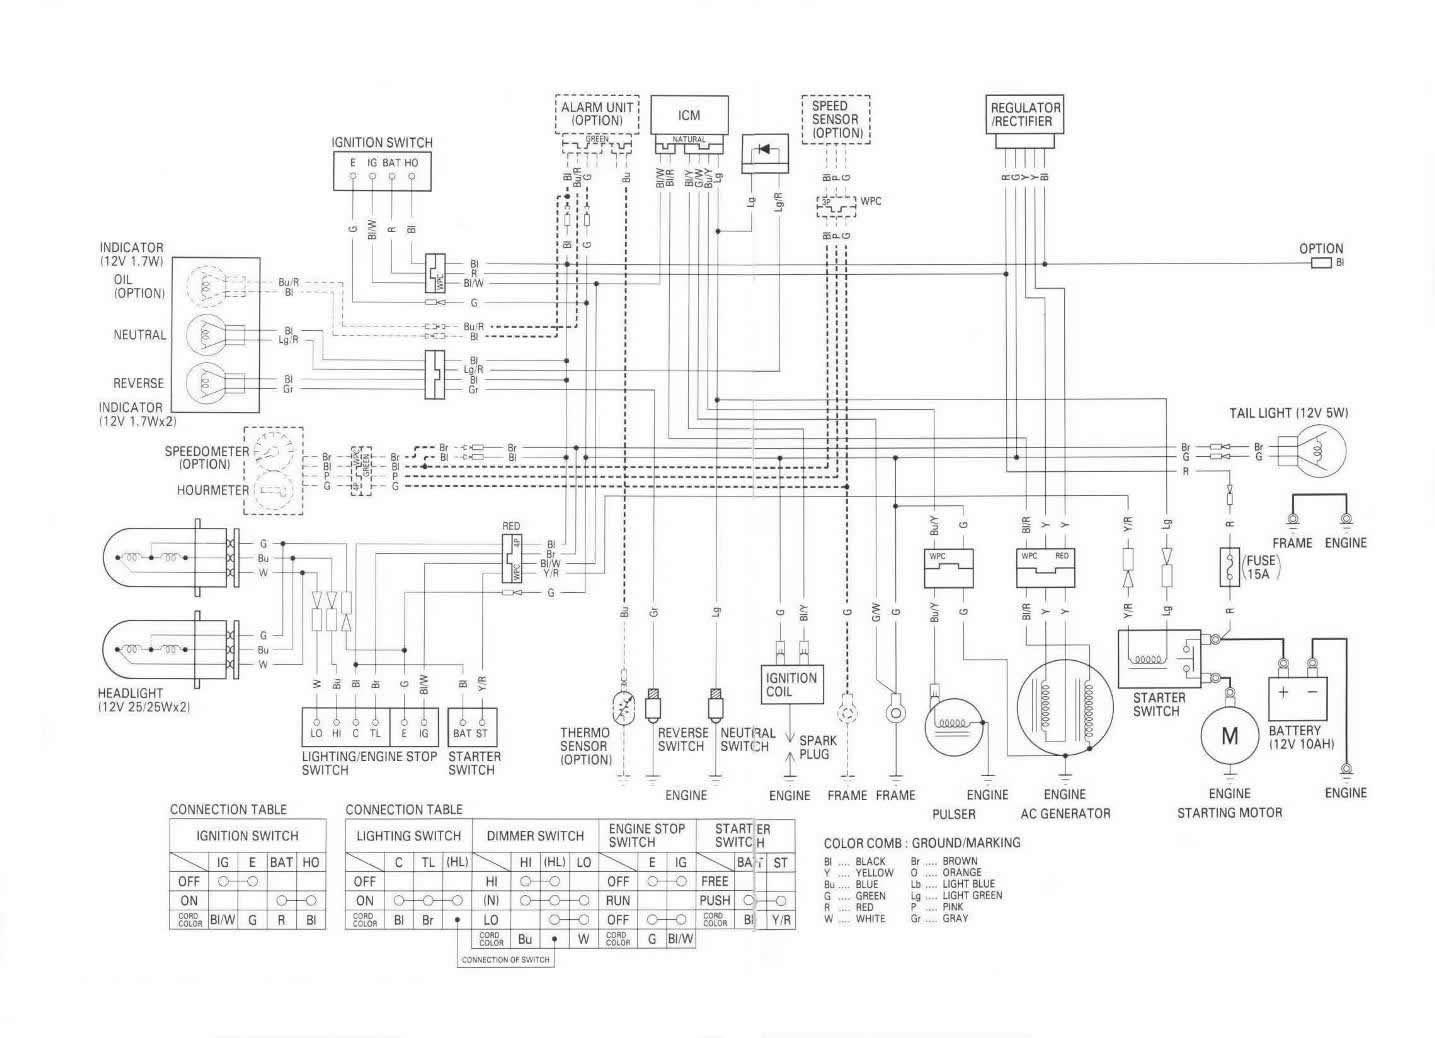 Wiring Diagram For A E100 Emergency Ballast. Wiring. Wiring ... on kawasaki bayou wiring diagram, honda recon battery, honda recon wire harness, yamaha warrior wiring diagram, honda recon piston, honda recon oil filter, honda recon charging system, kawasaki brute force 750 wiring diagram, honda recon specifications, suzuki intruder wiring diagram, yamaha rhino wiring diagram, honda recon air cleaner, honda rancher wiring-diagram, yamaha raptor wiring diagram, honda recon fuel system, kawasaki mule wiring diagram, honda trx450r wiring-diagram, yamaha big bear wiring diagram, honda recon forum, suzuki king quad wiring diagram,